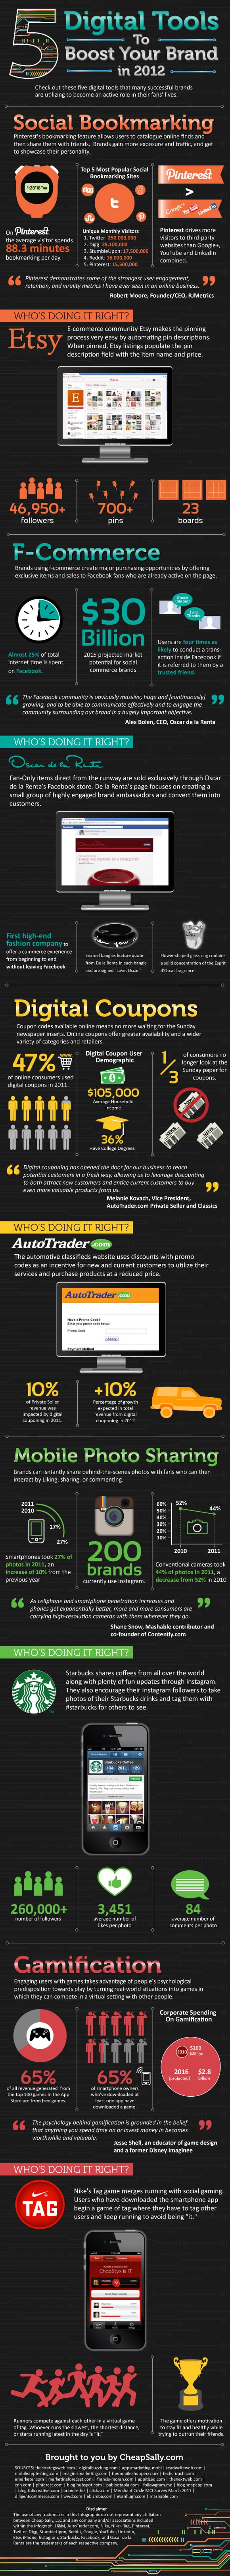 2012 digital tools 5 Digital Tools to Boost your Brand in 2012 [Infographic]